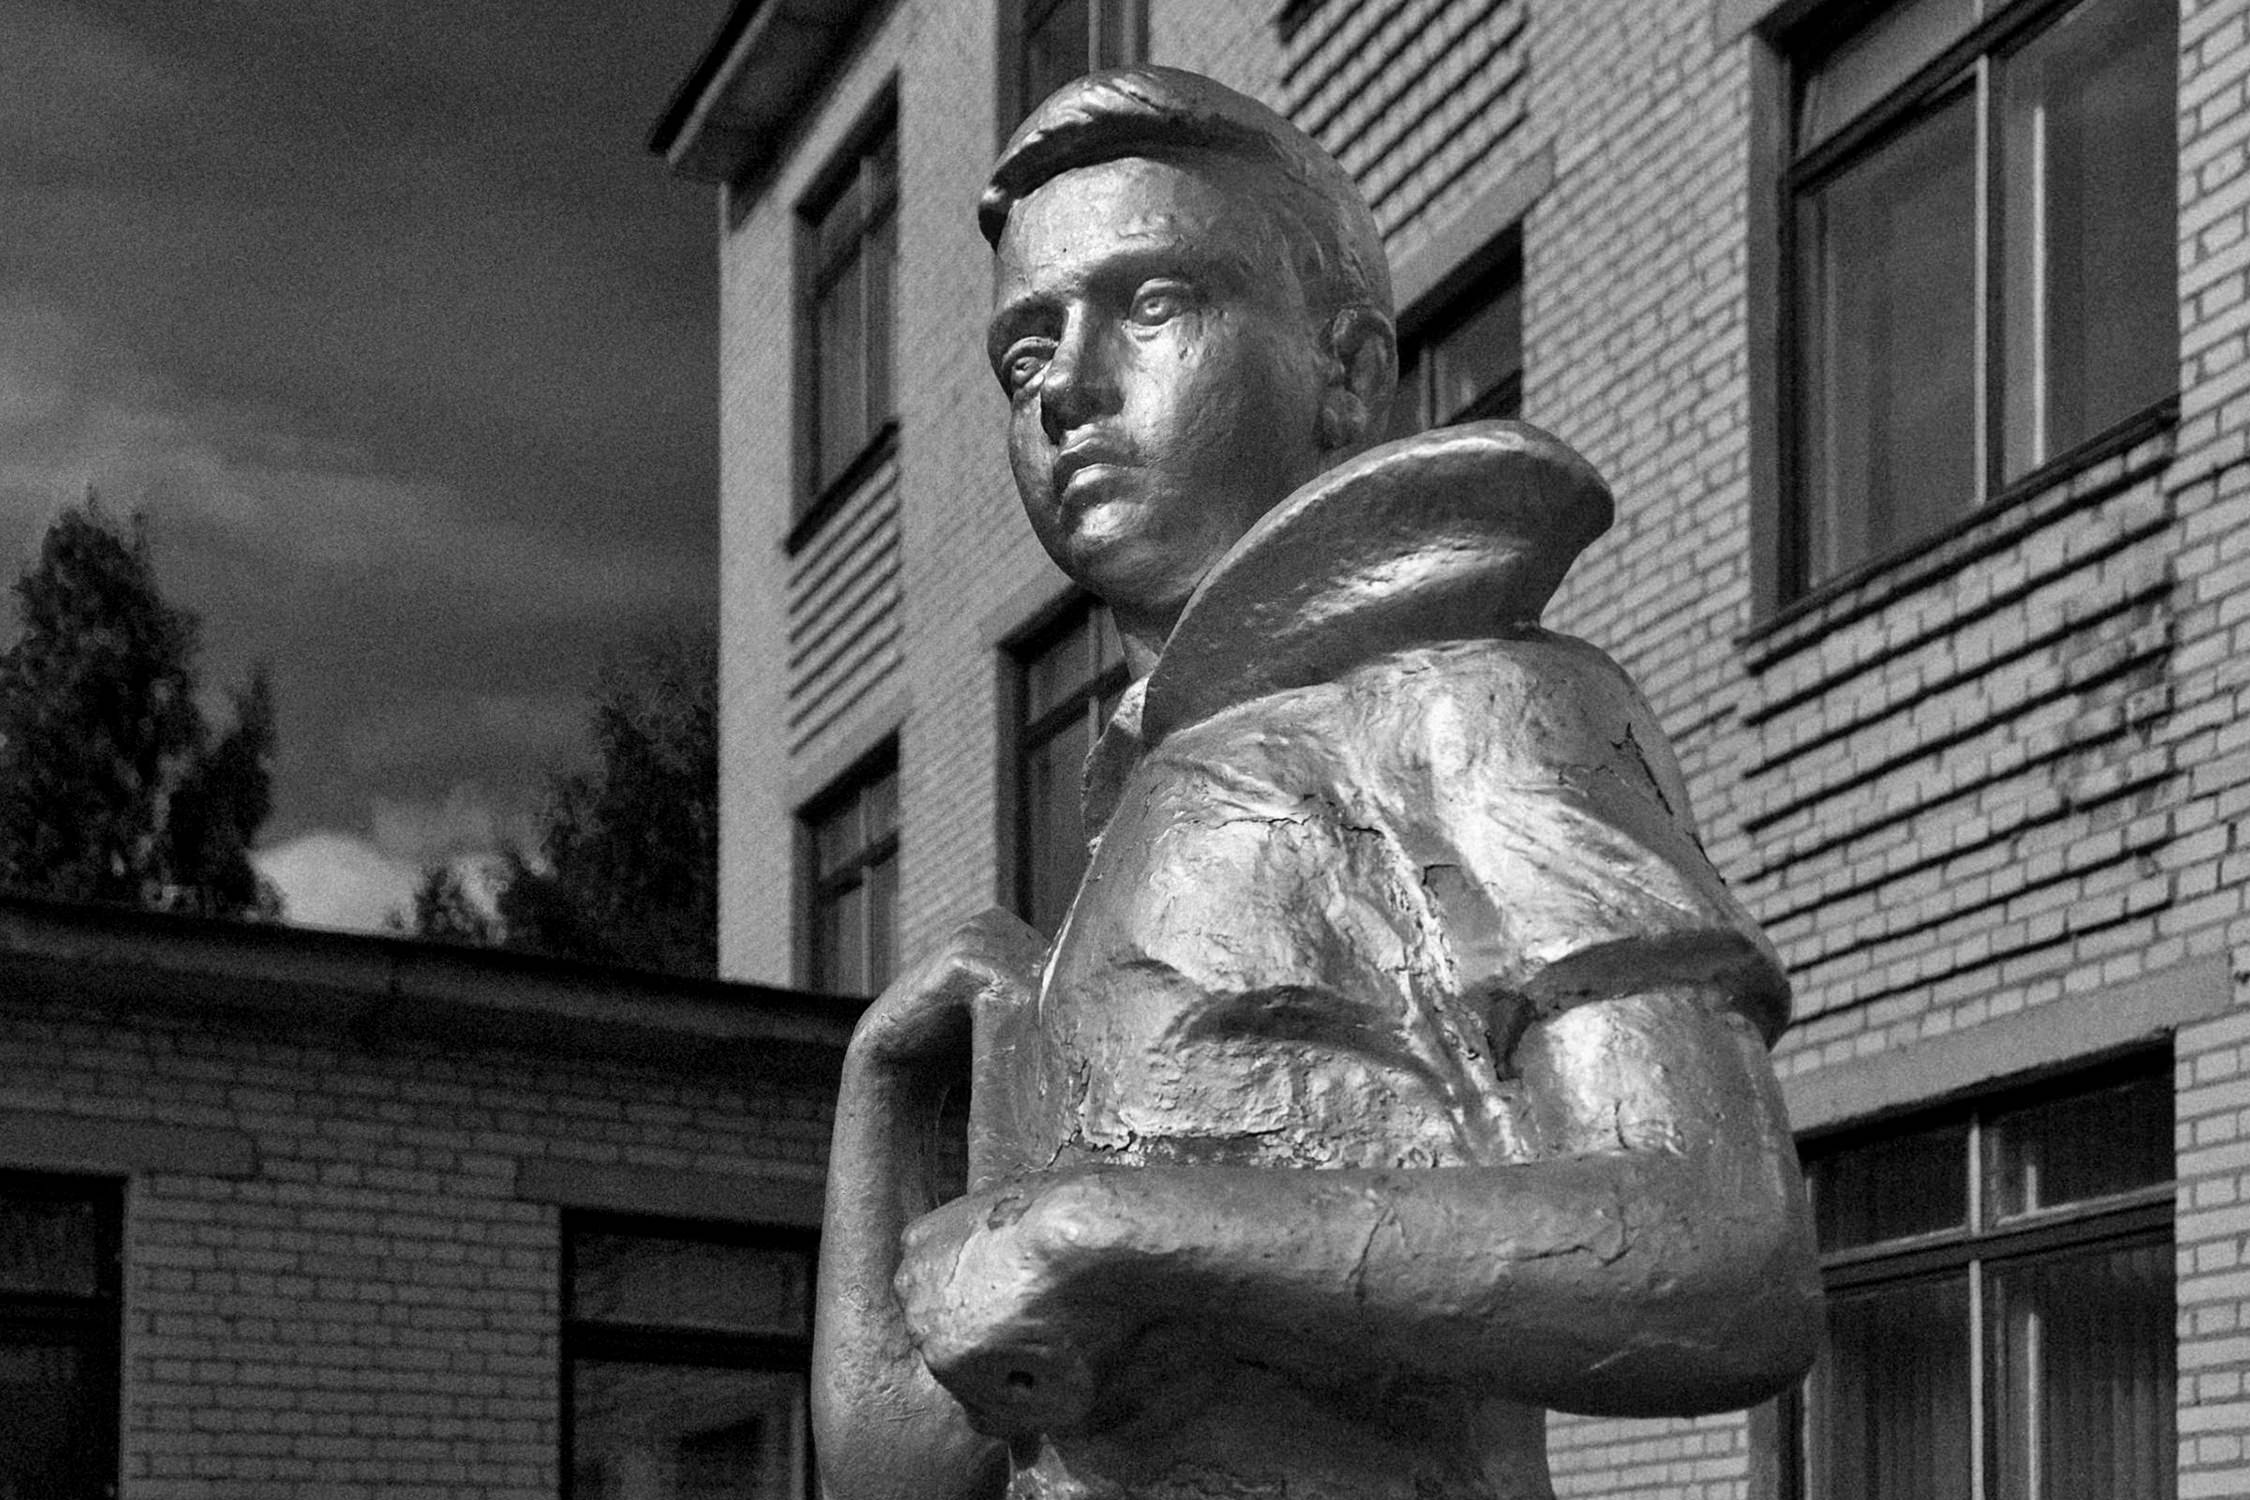 Cracked monument of USSR pioneer standing near secondary school